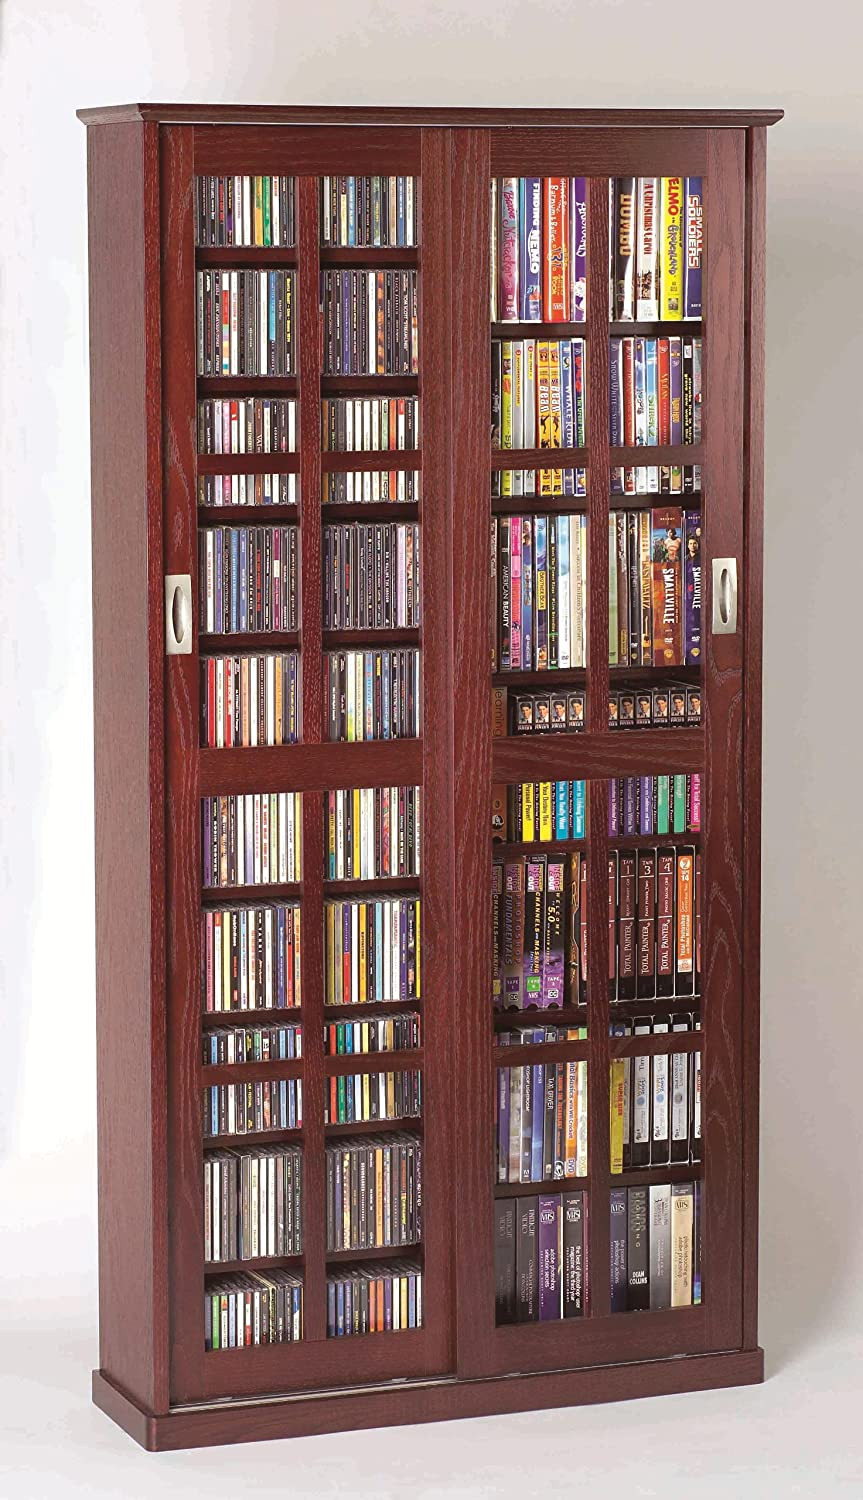 Dvd Cabinets with Doors Luxury Leslie Dame Mission Multimedia Dvd Cd Storage Cabinet with Sliding Glass Doors Cherry